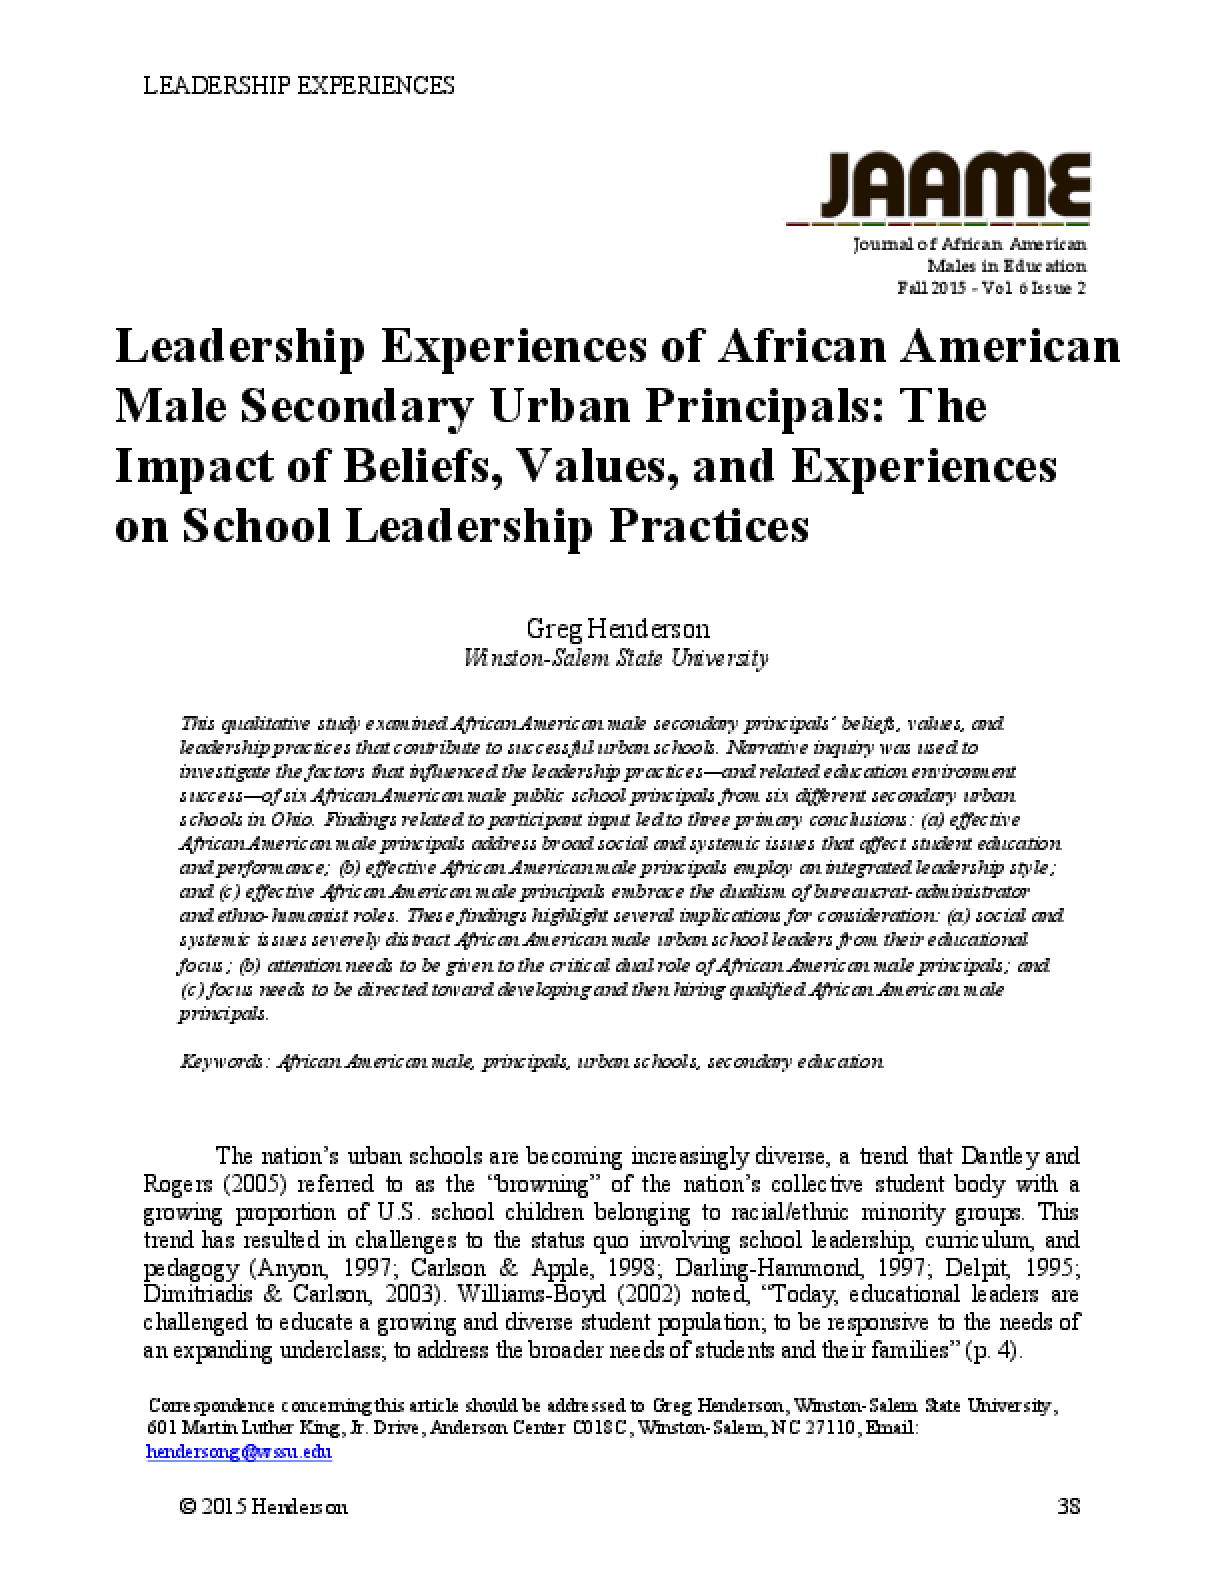 journal of african american males in education leadership experiences of african american male secondary urban principals the impact of beliefs values and experiences on school leadership practices